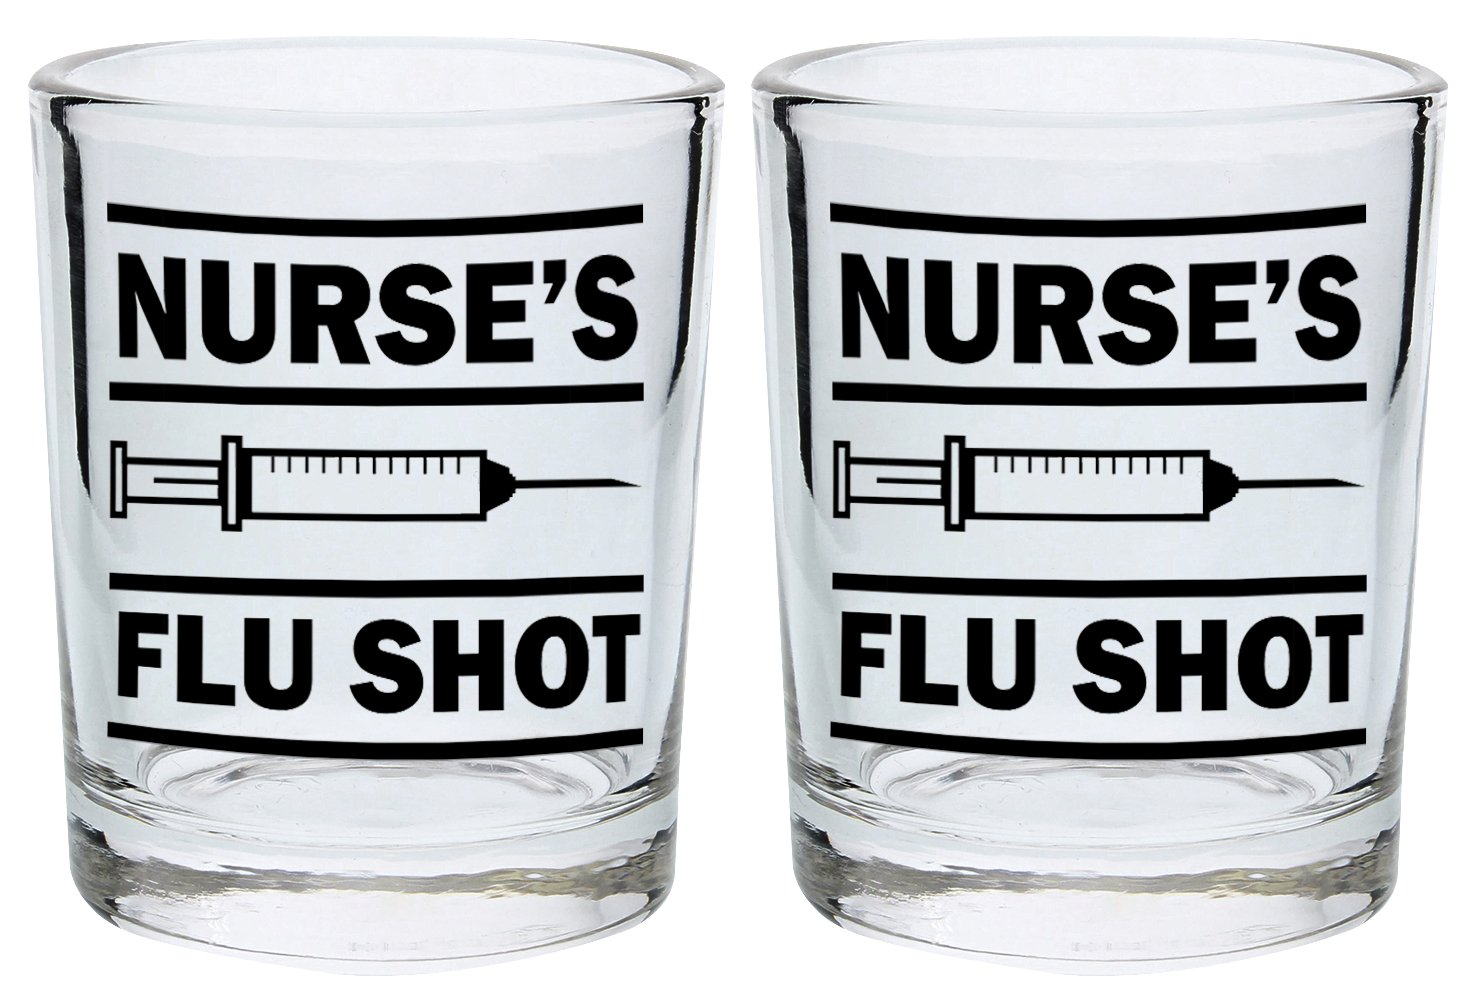 nurse's flu shot shot glass